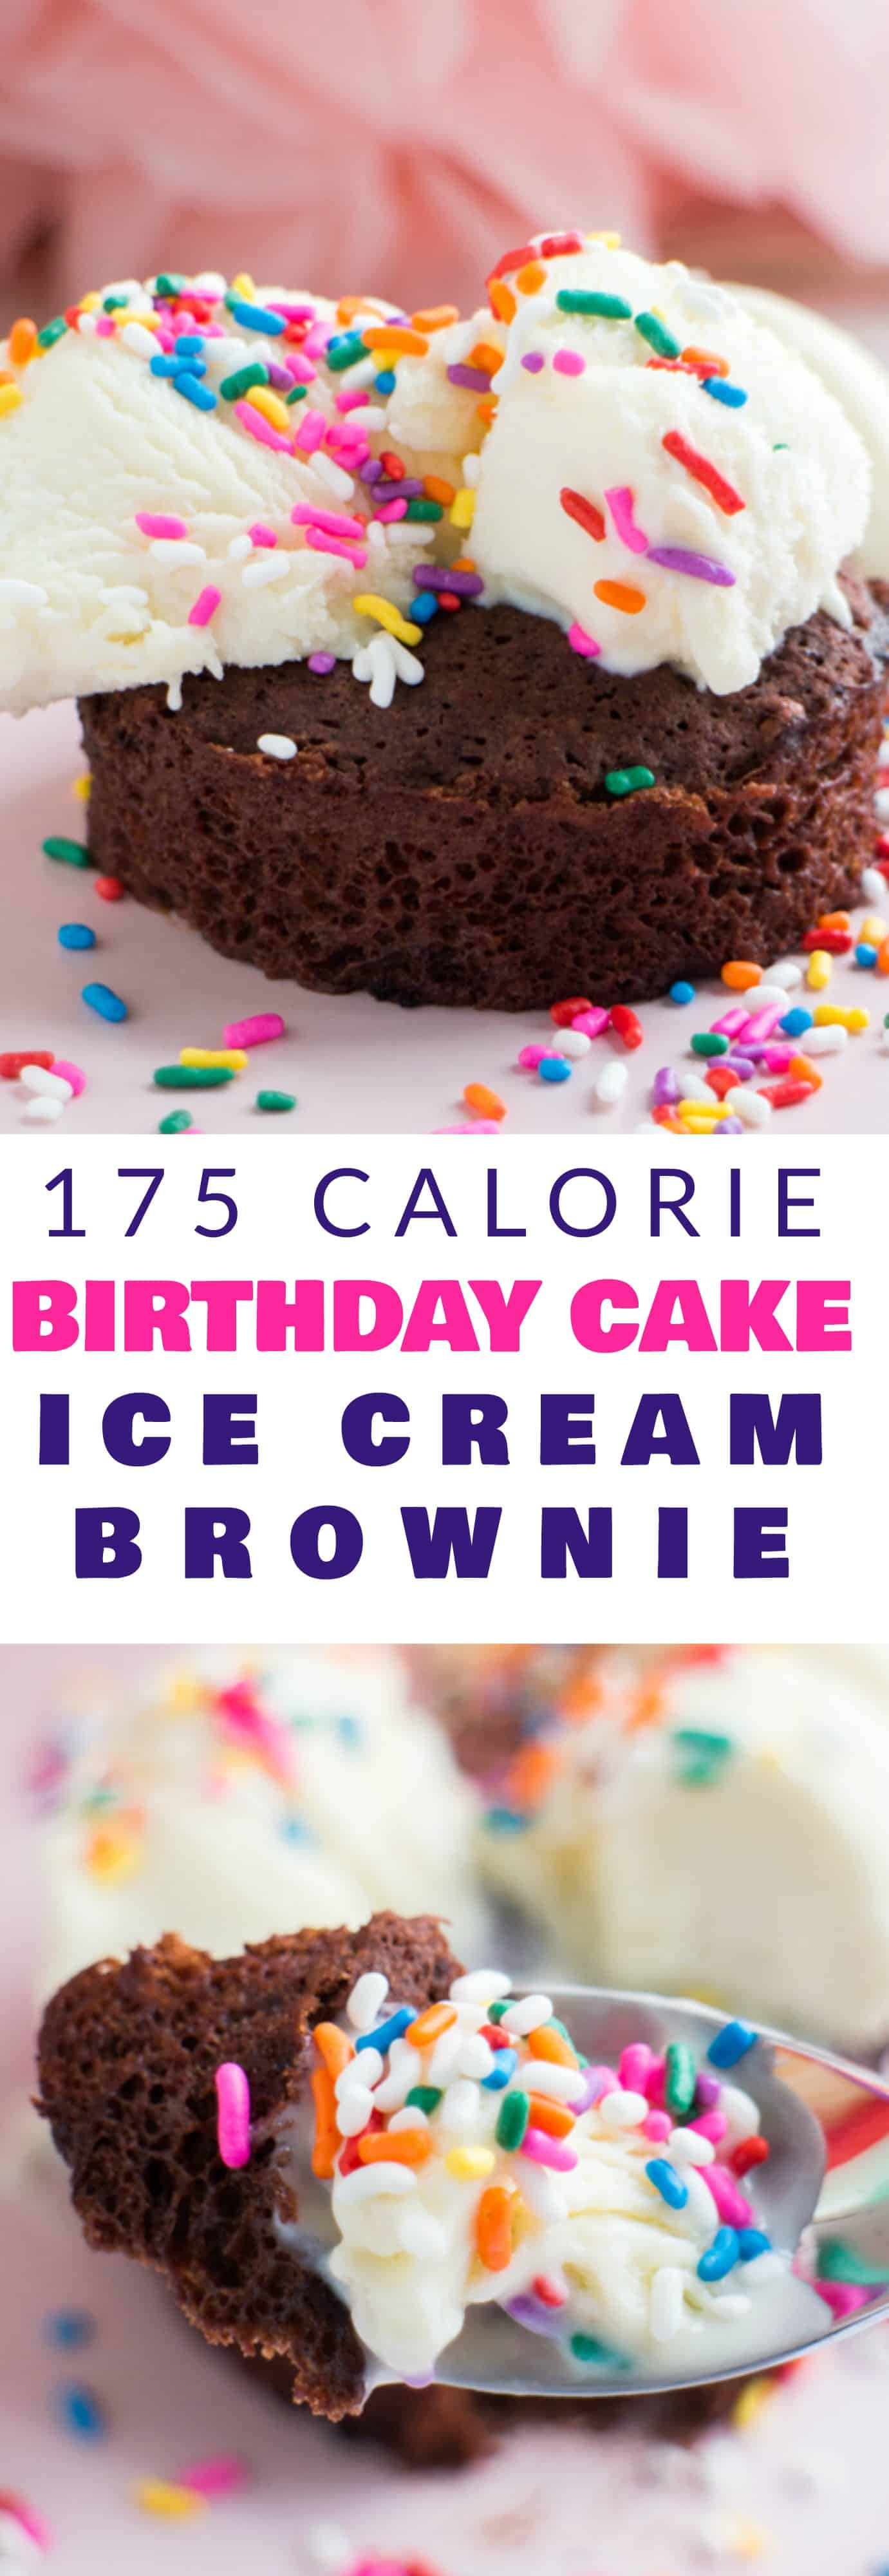 175 Calorie Birthday Cake Ice Cream Brownie Brooklyn Farm Girl